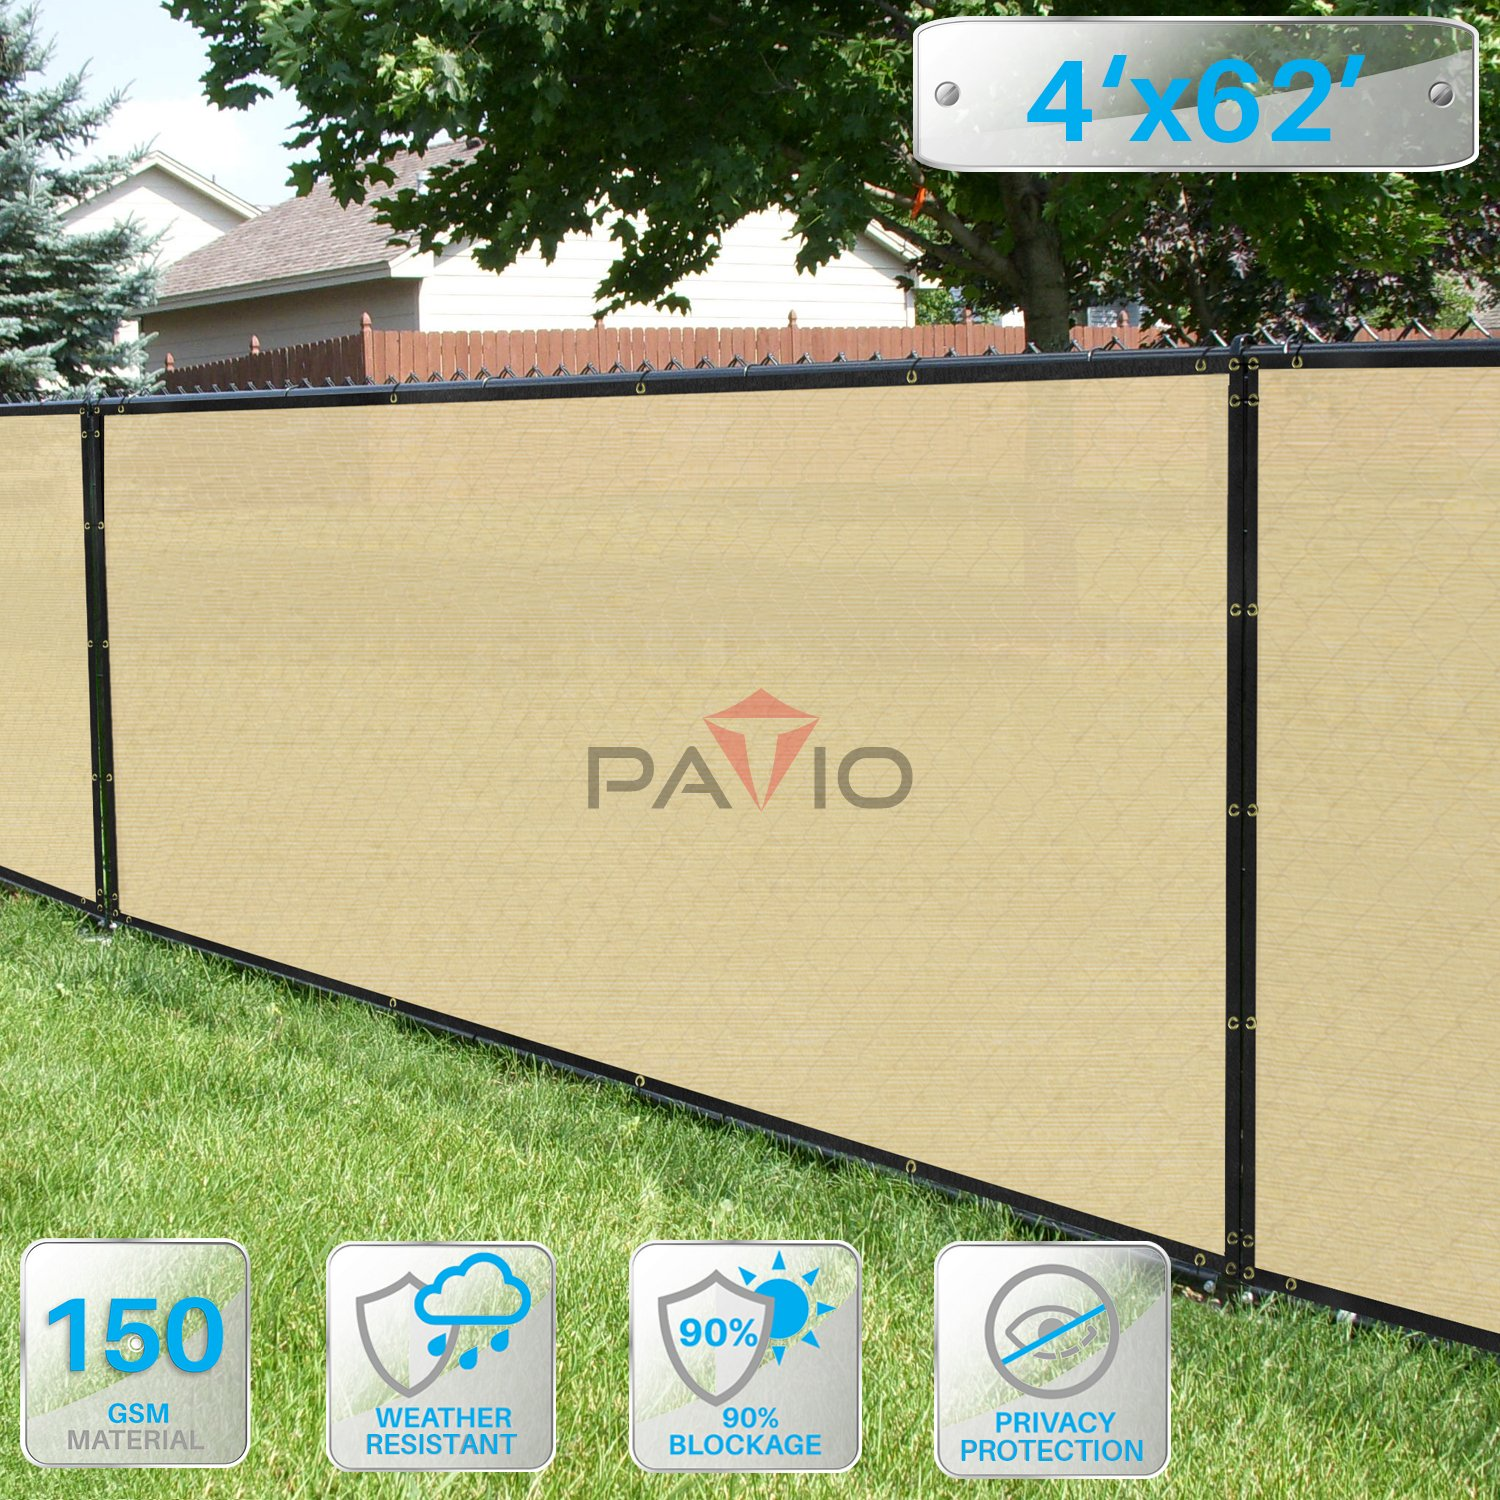 Patio Paradise 4' x 62' Privacy Screen Fence in Beige, Commercial Grand Mesh Shade Fabric with Brass Gromment Outdoor Windscren - Custom